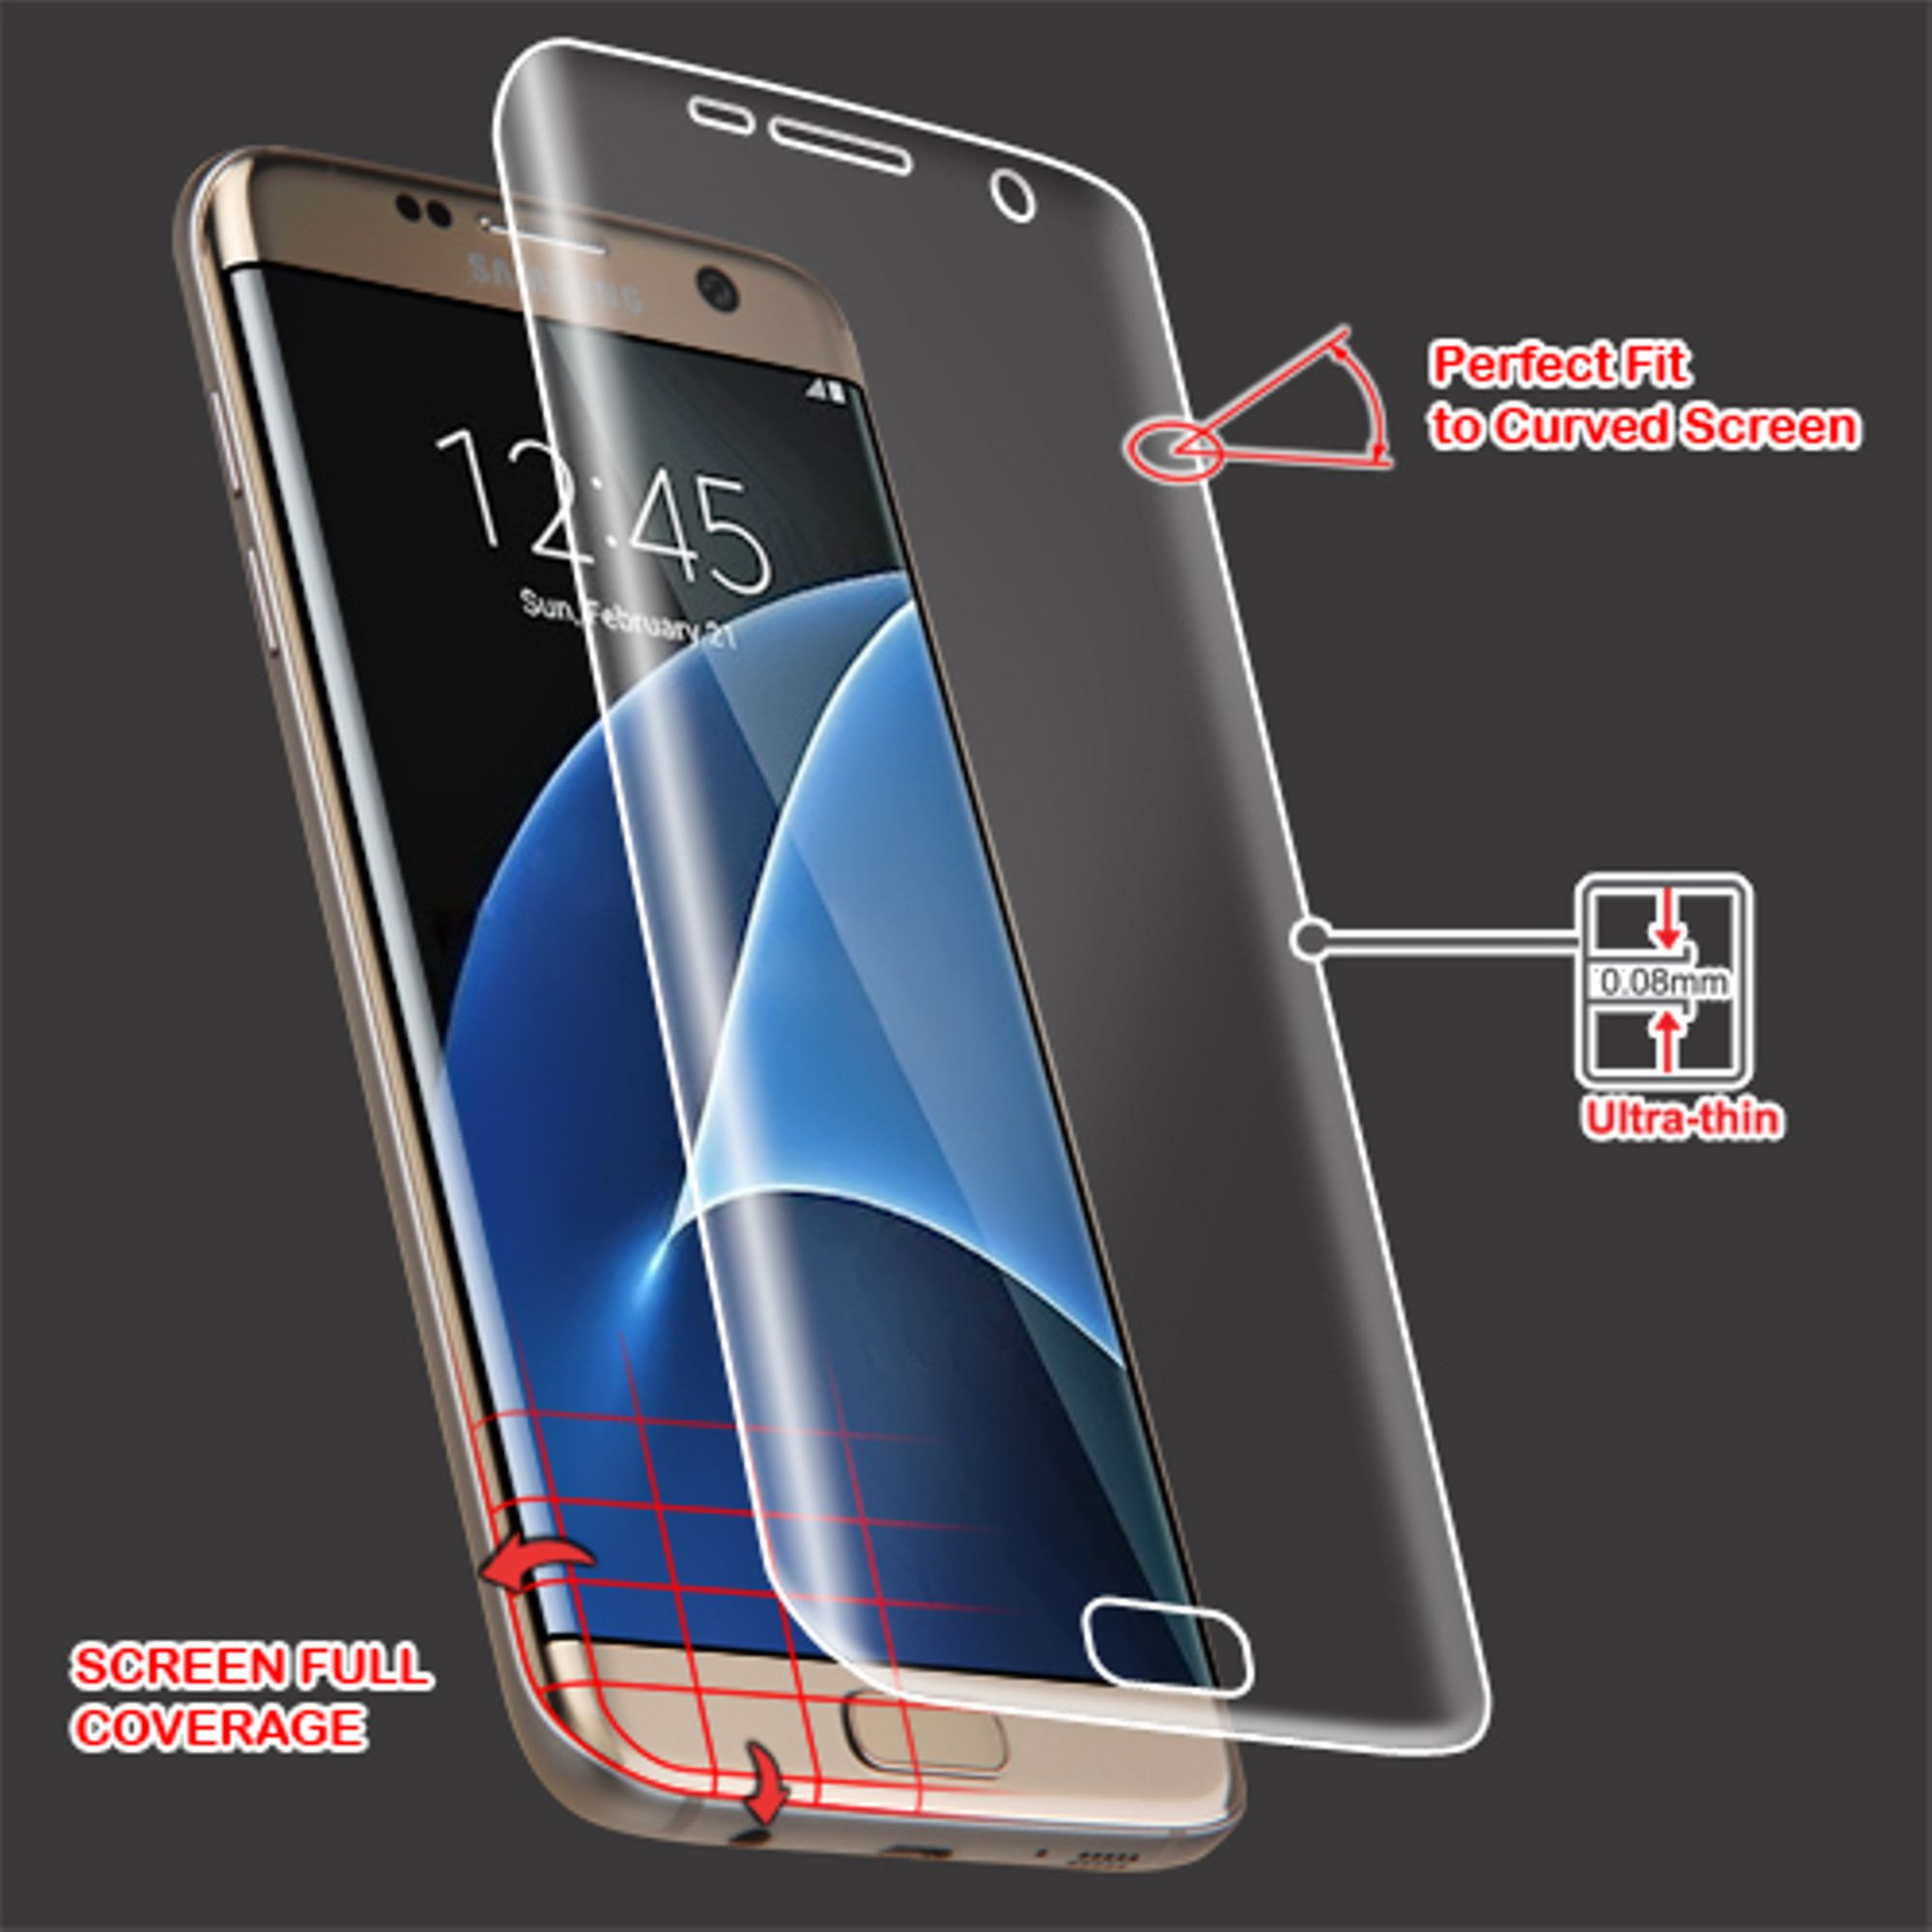 Insten For Samsung Galaxy S7 Edge Clear LCD Screen Protector with Curved Full Coverage